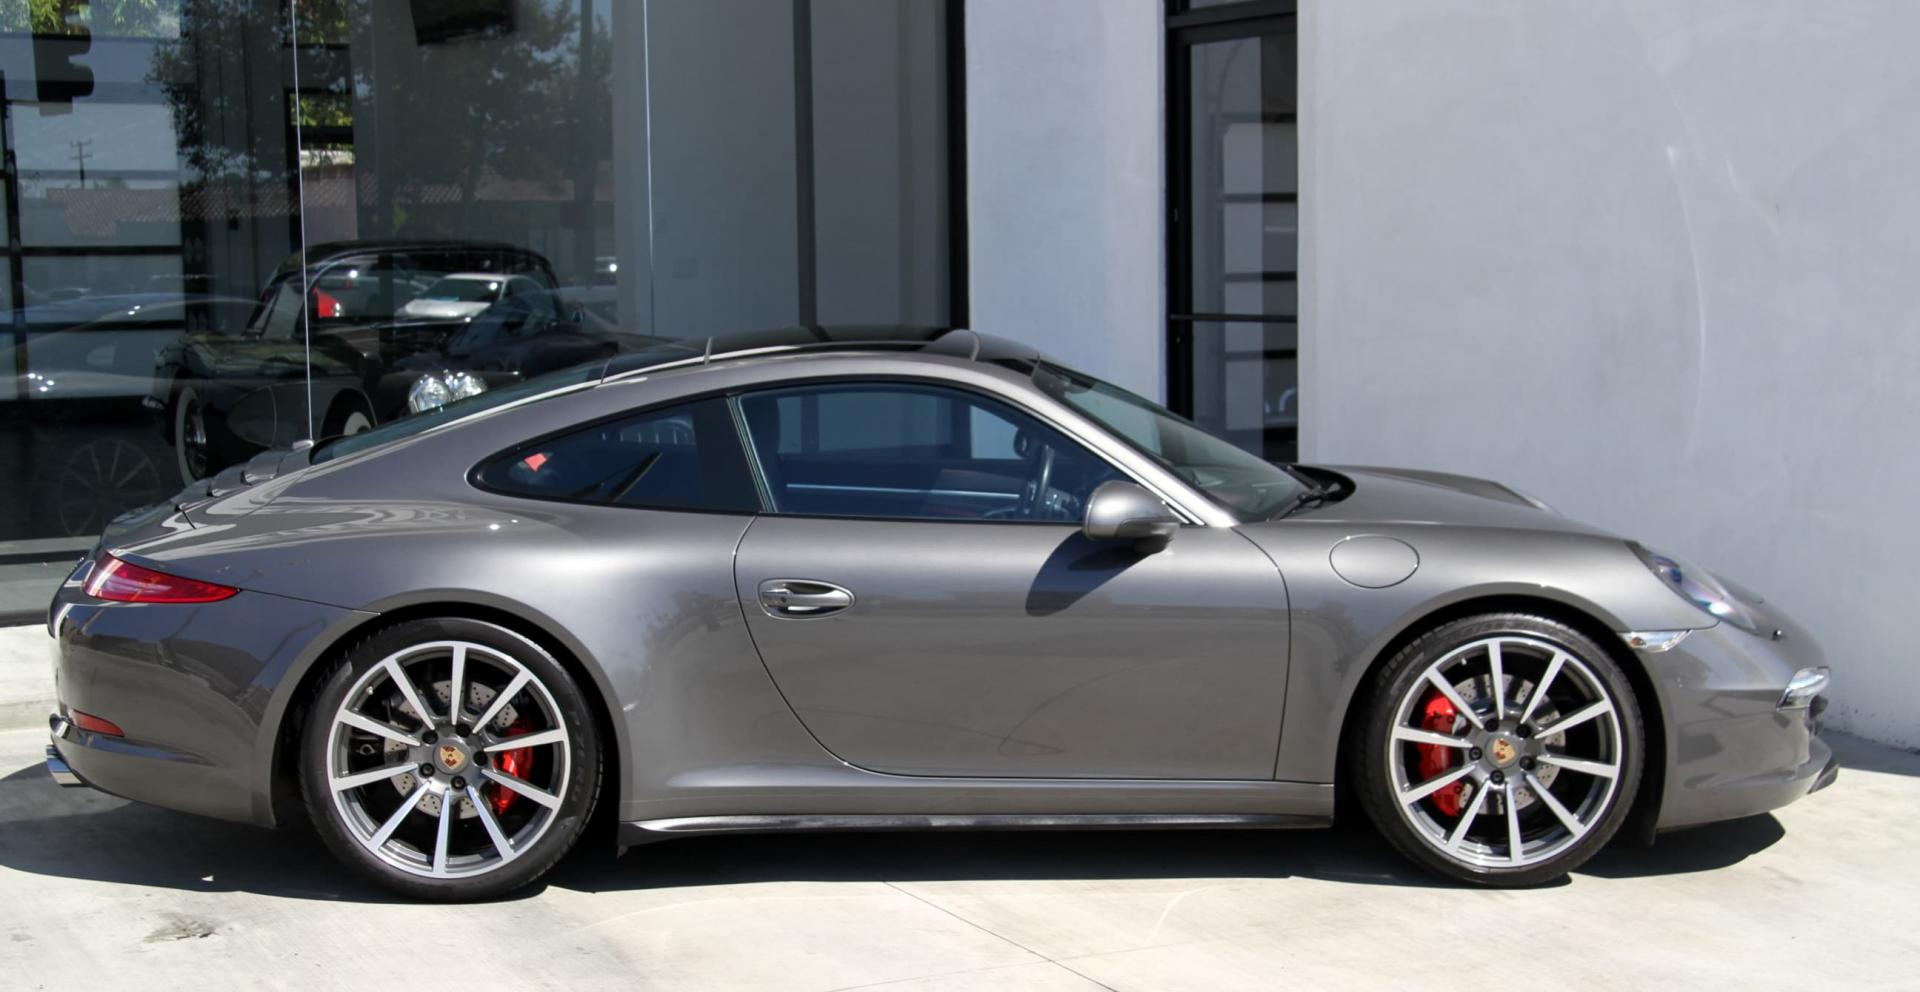 2014 porsche 911 carrera 4s stock 6015 for sale near redondo beach ca ca porsche dealer. Black Bedroom Furniture Sets. Home Design Ideas